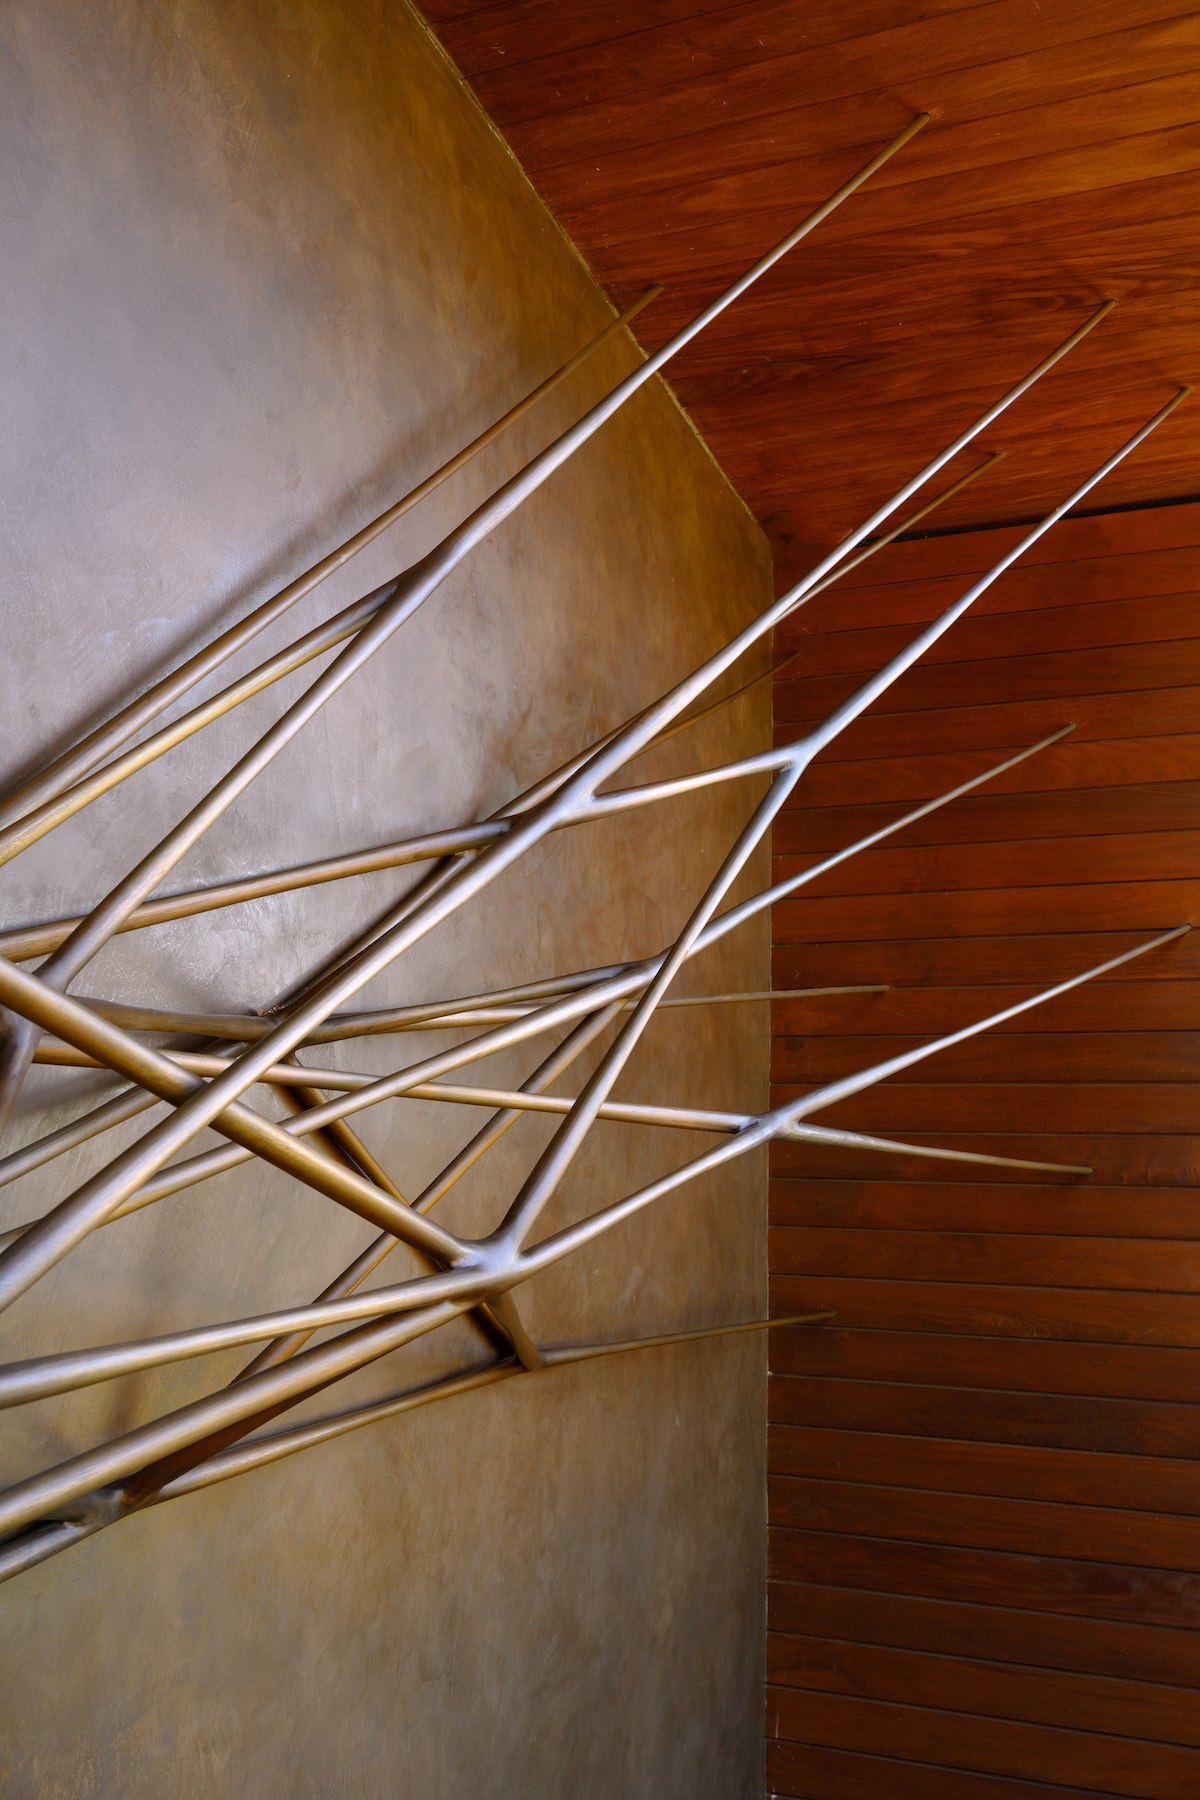 surface detail of Portal, a sculpture by Christopher Kurtz, installed on a home